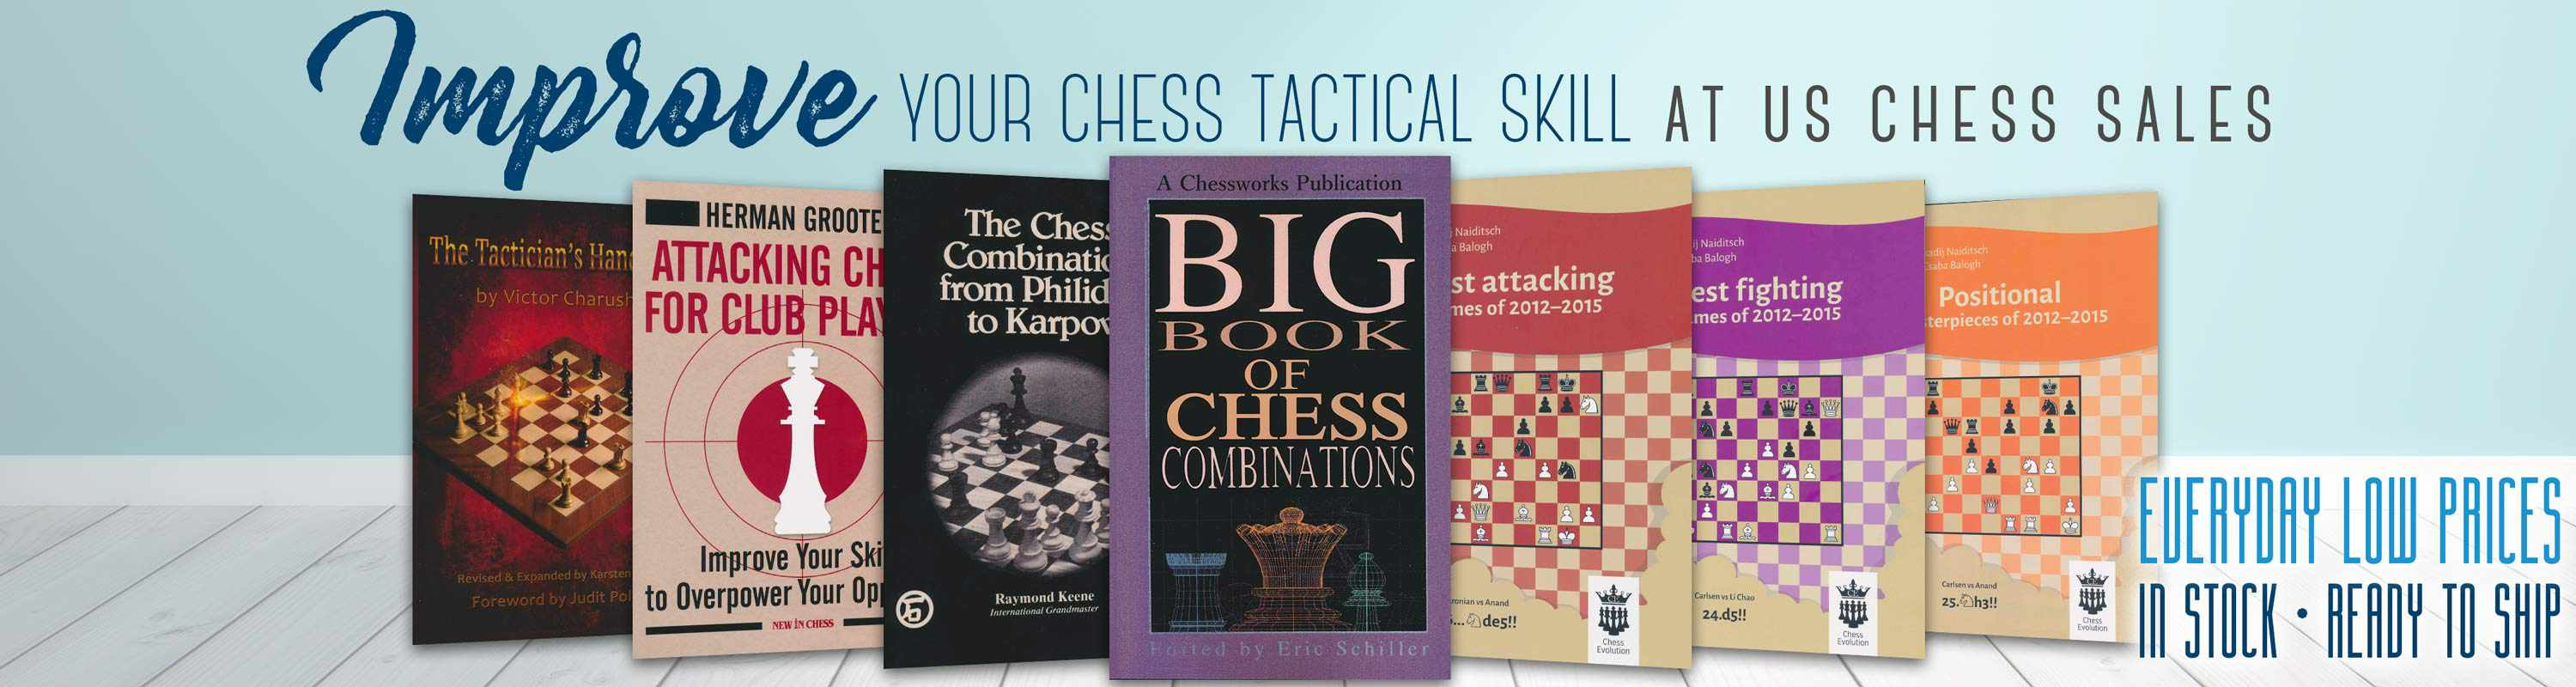 Improve Chess Tactics